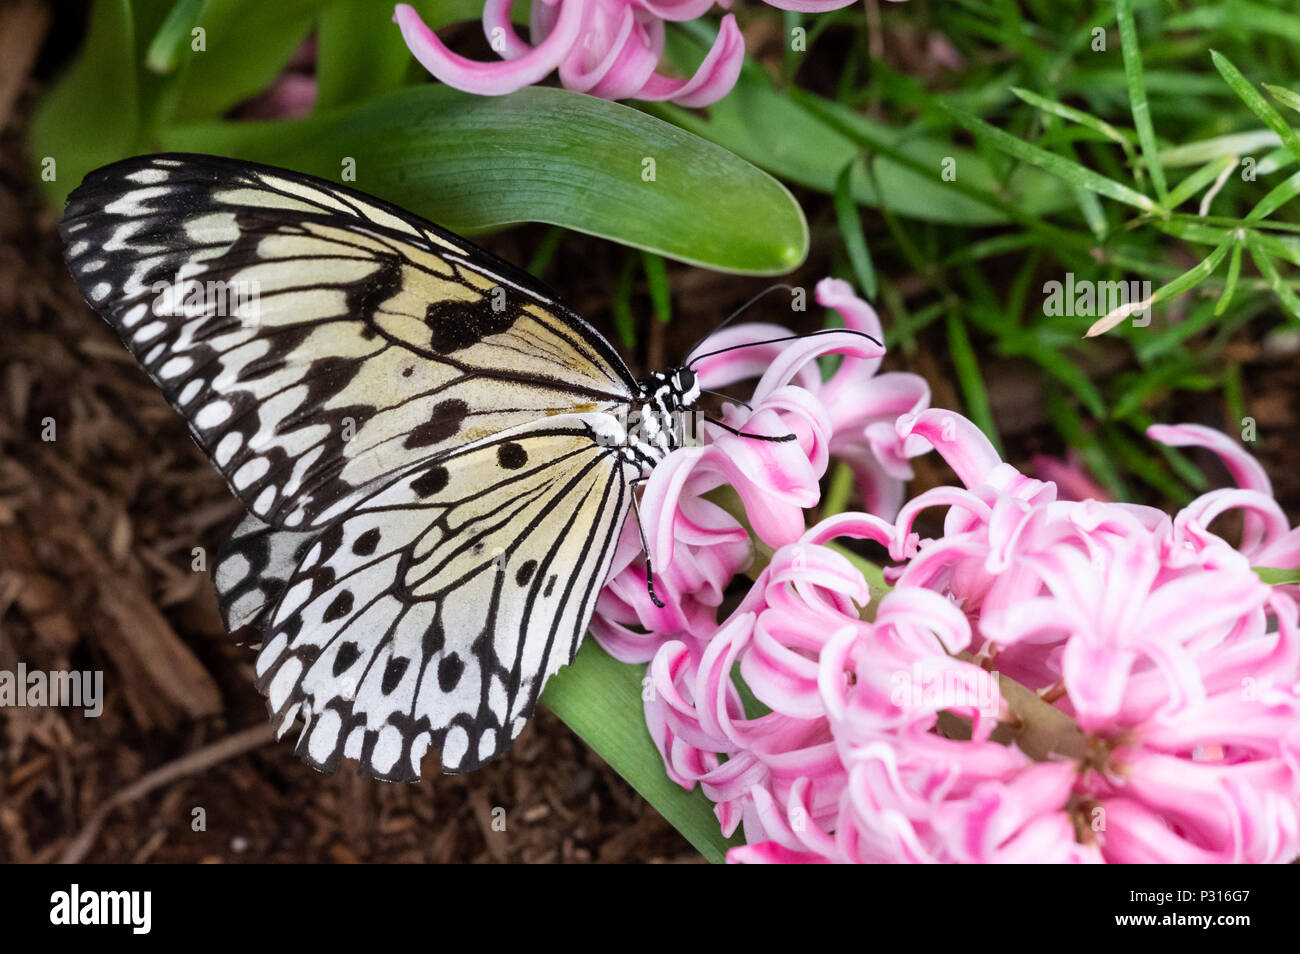 Idea Leuconoe butterfly (large tree nymph, rice paper, paper kite) sitting and eating on a pink hyacinth flower - Stock Image